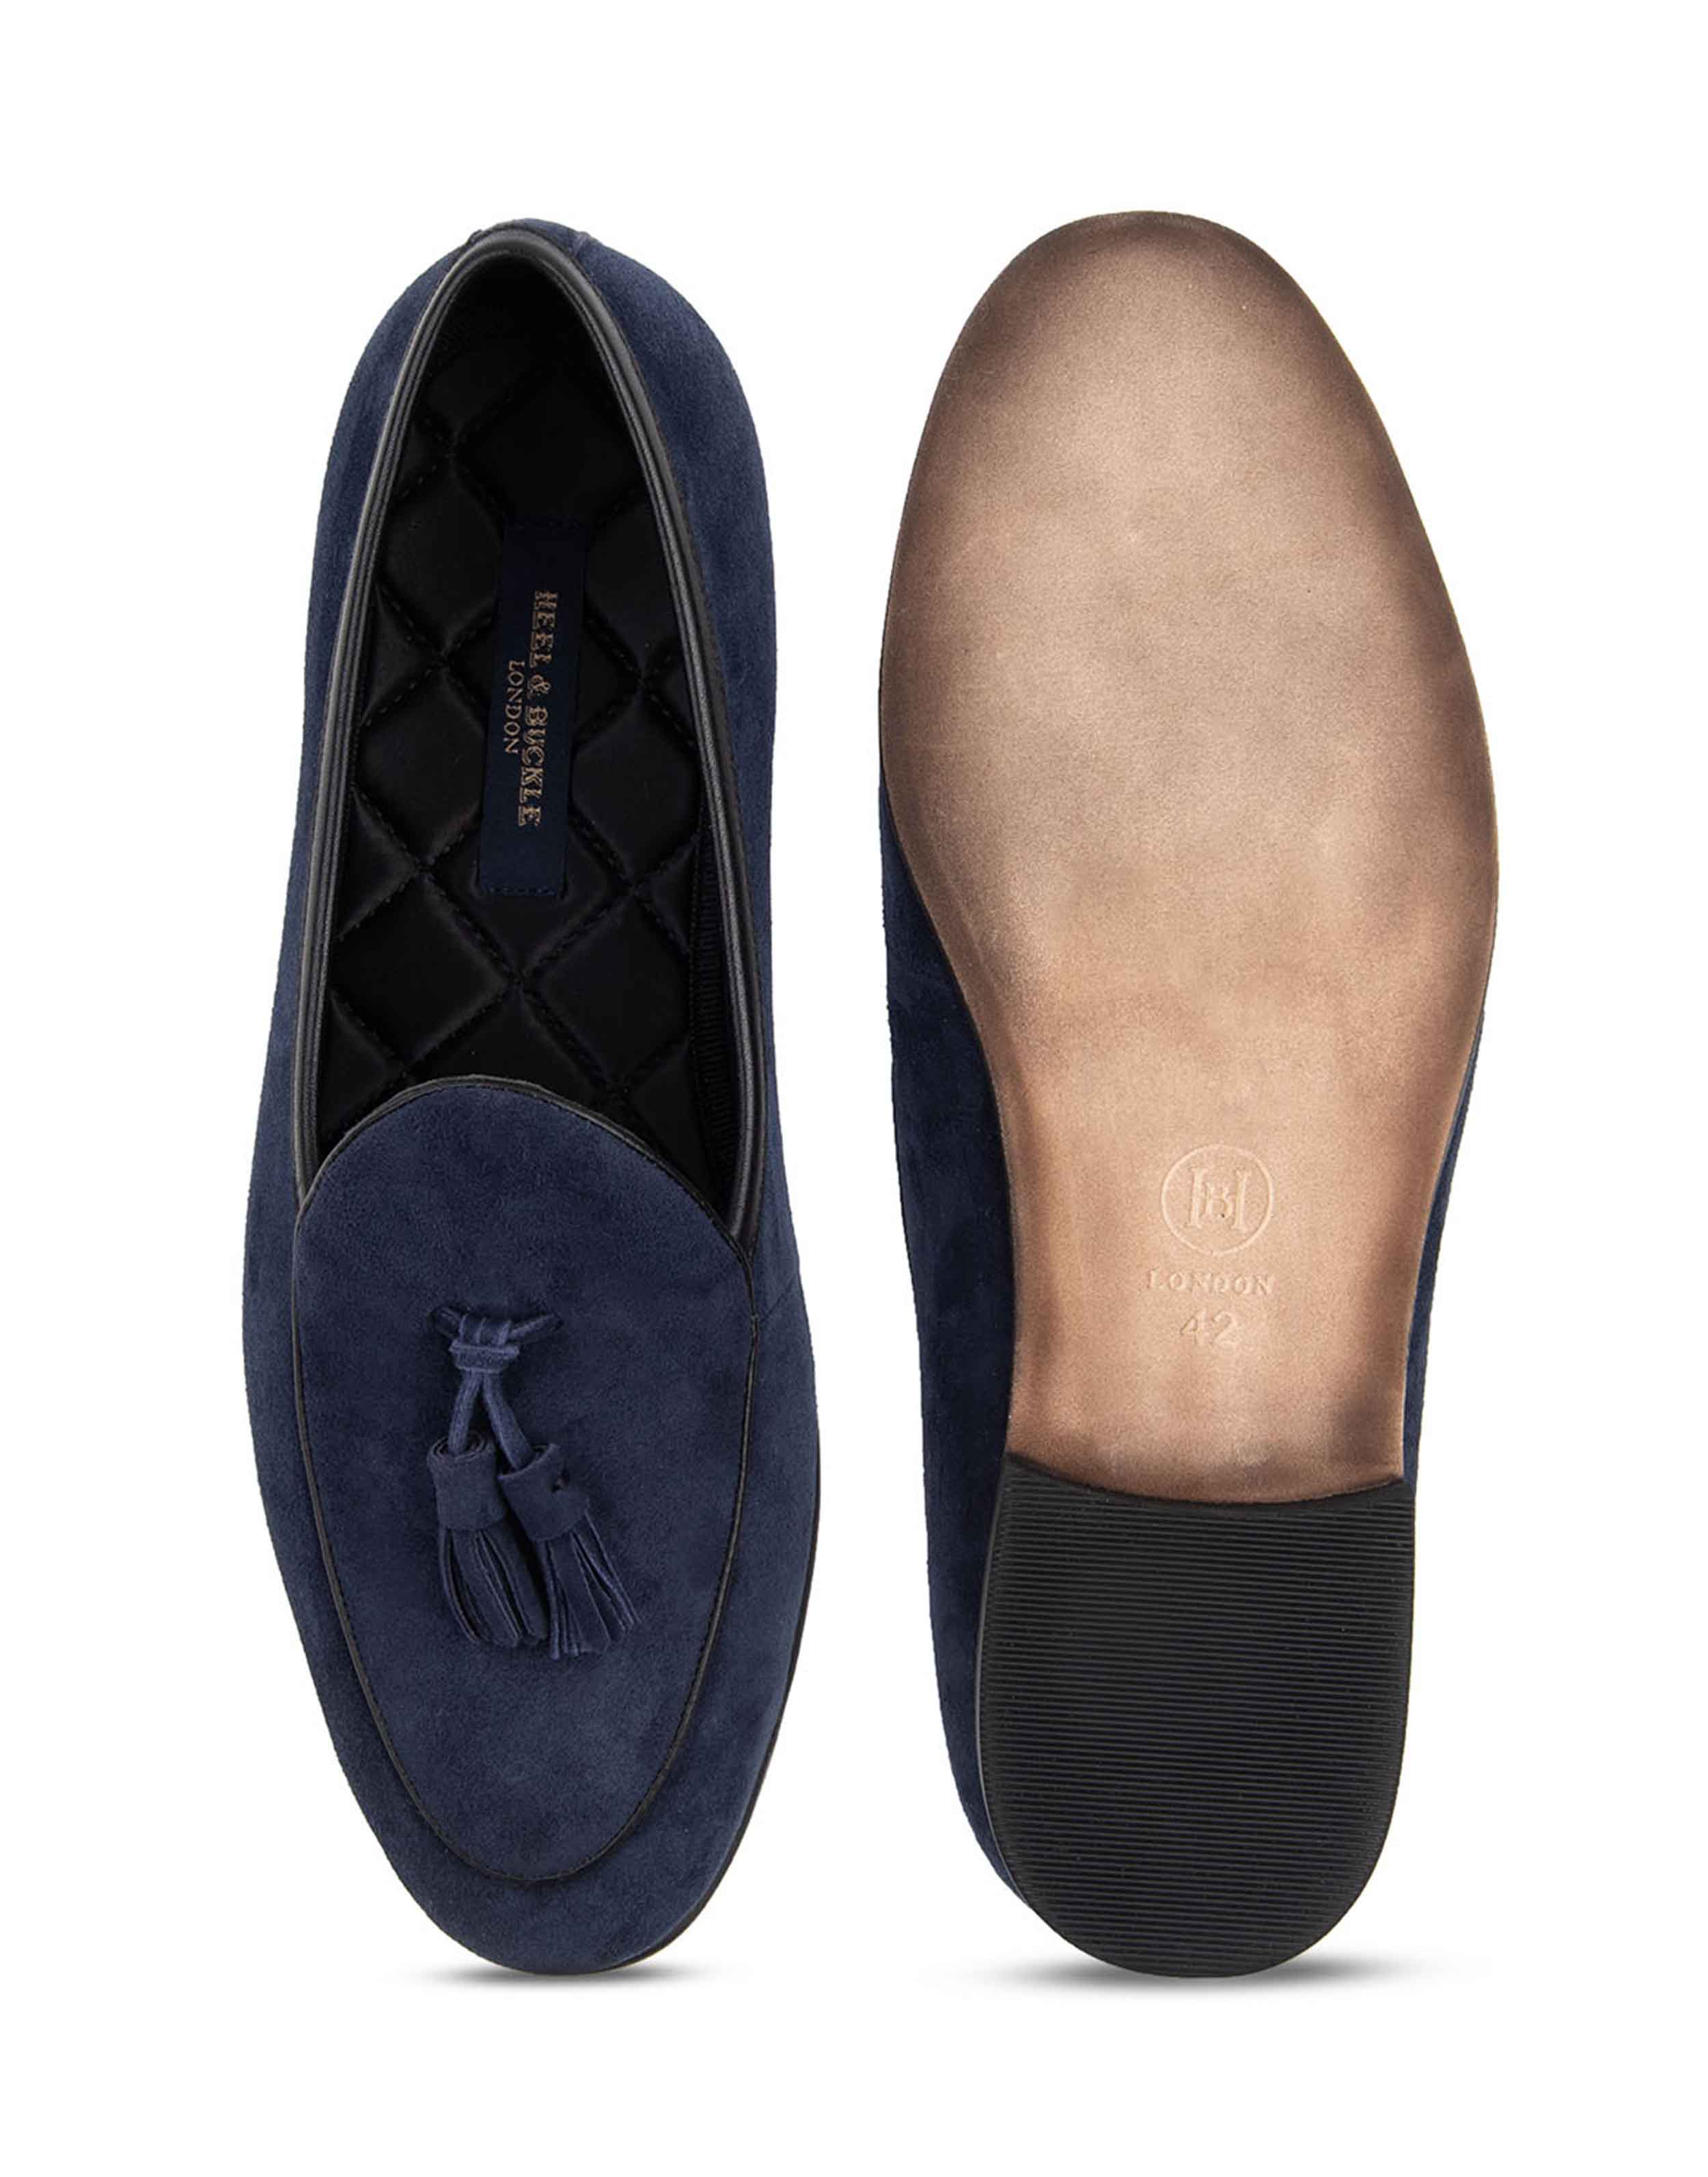 Heel _ Buckle London-HBDARM074-Sliced Navy Suede Loafers-Navy-4